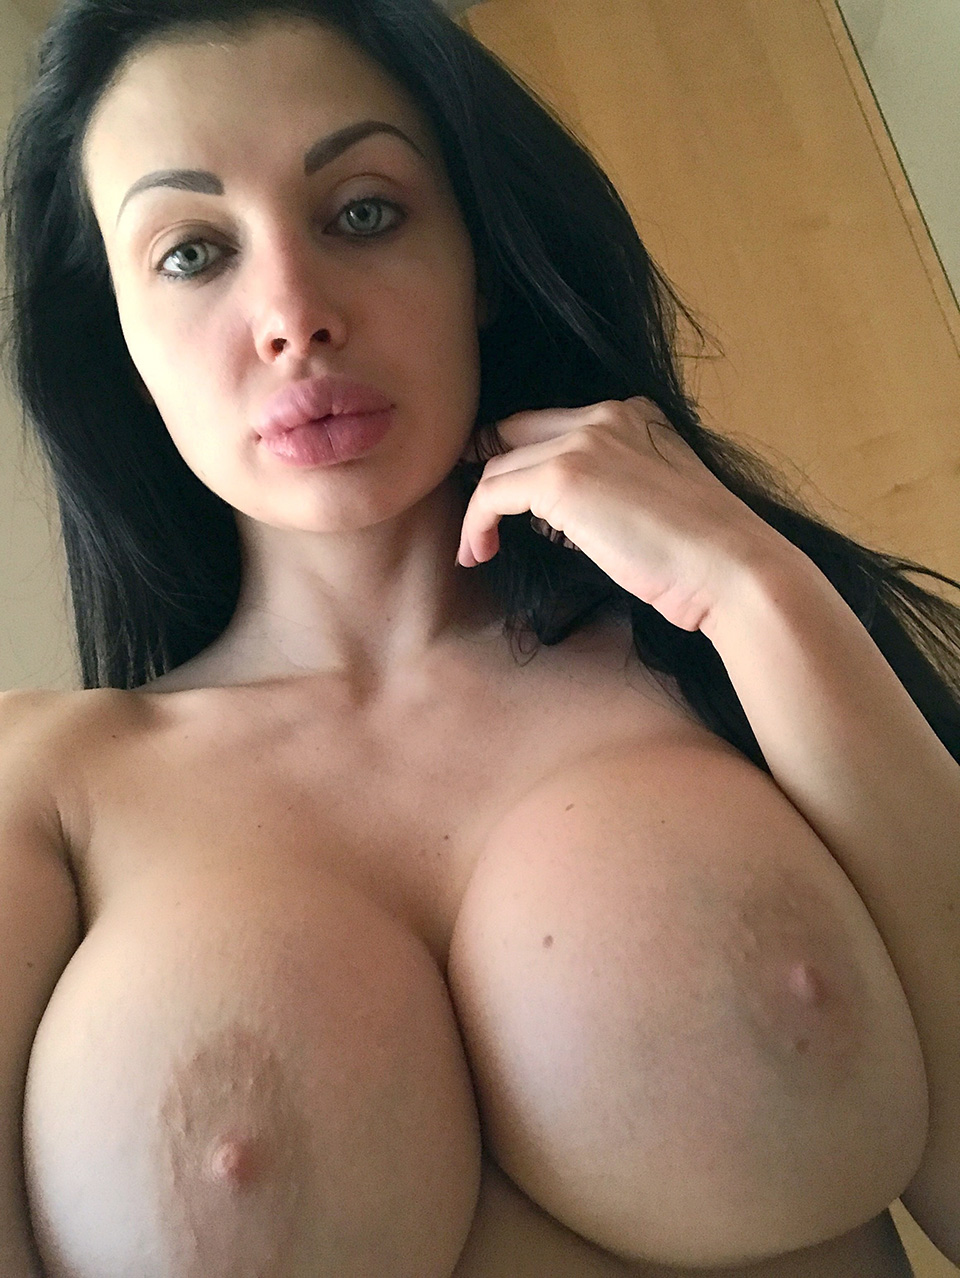 Aletta Ocean Leaked Photos